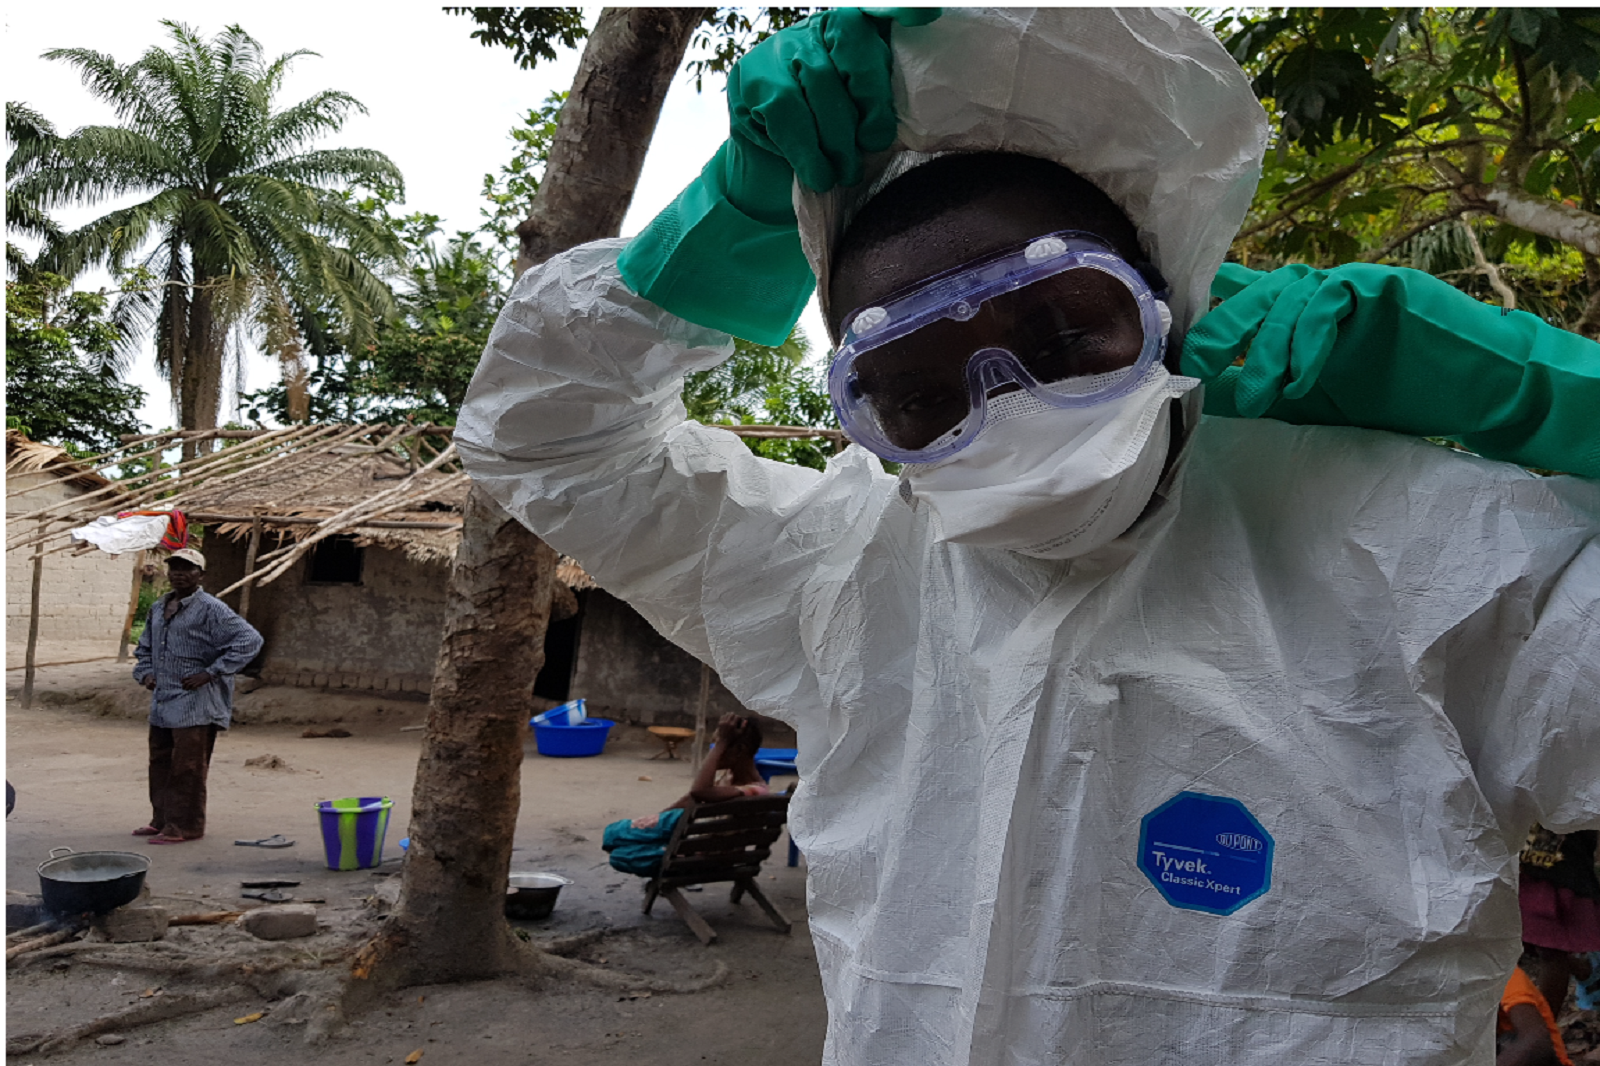 Health worker wearing protective gear